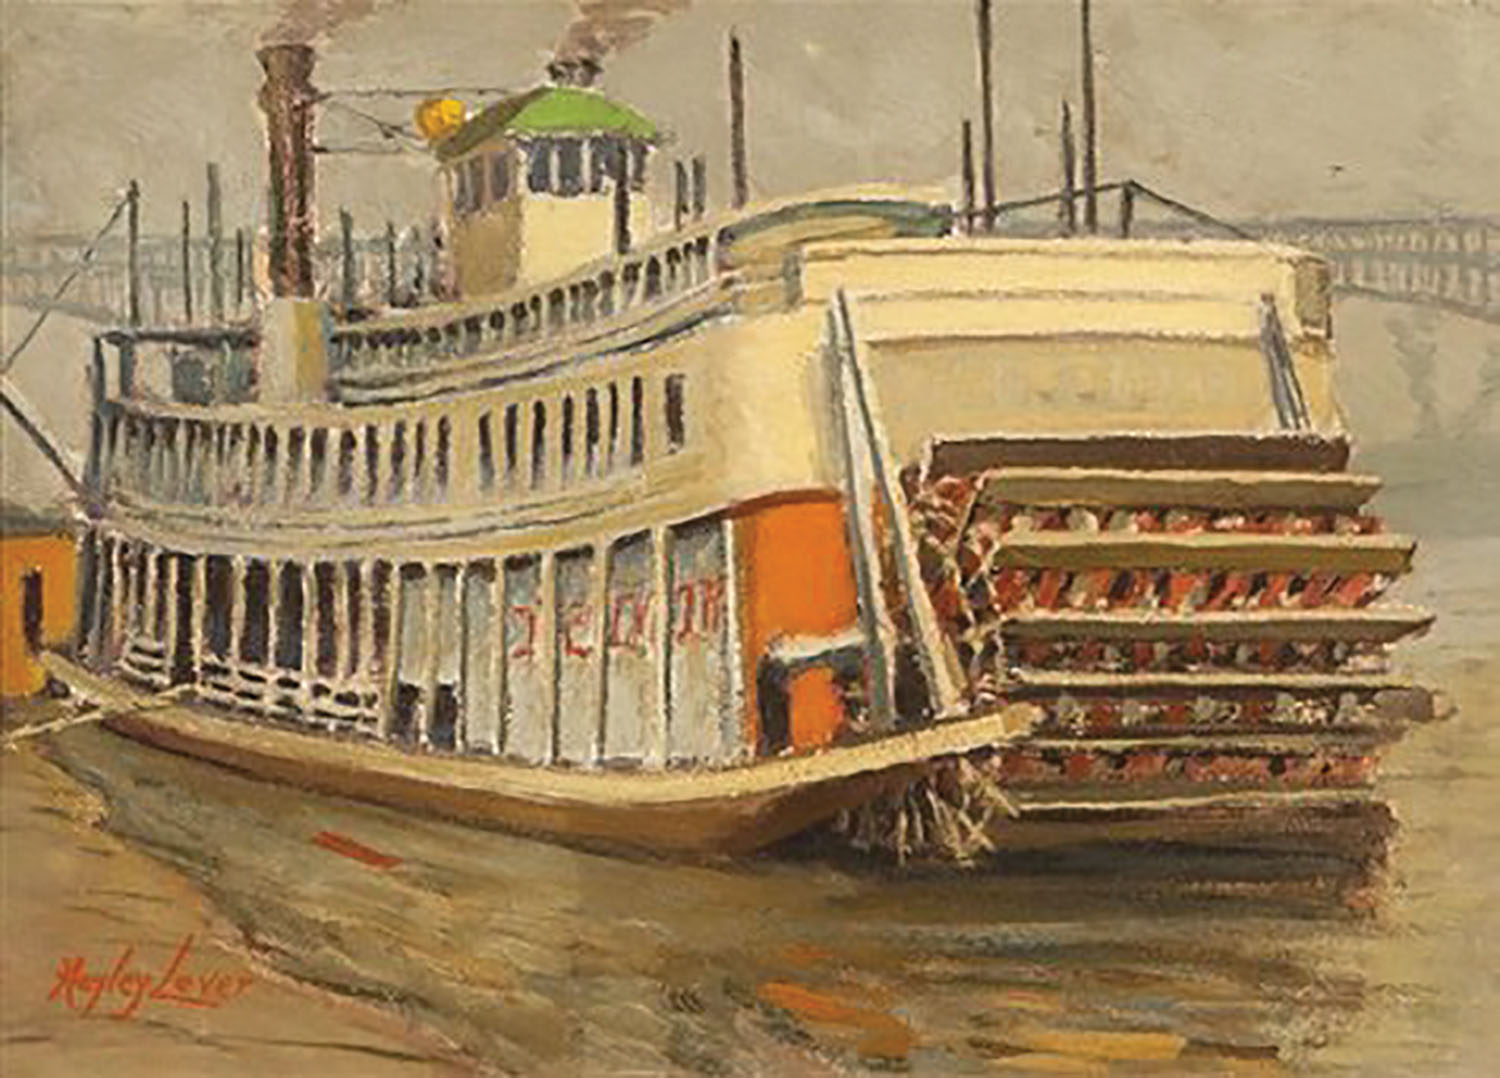 Painting of the Str. Golden Eagle at the St. Louis levee. (Photo from Keith Norrington collection)